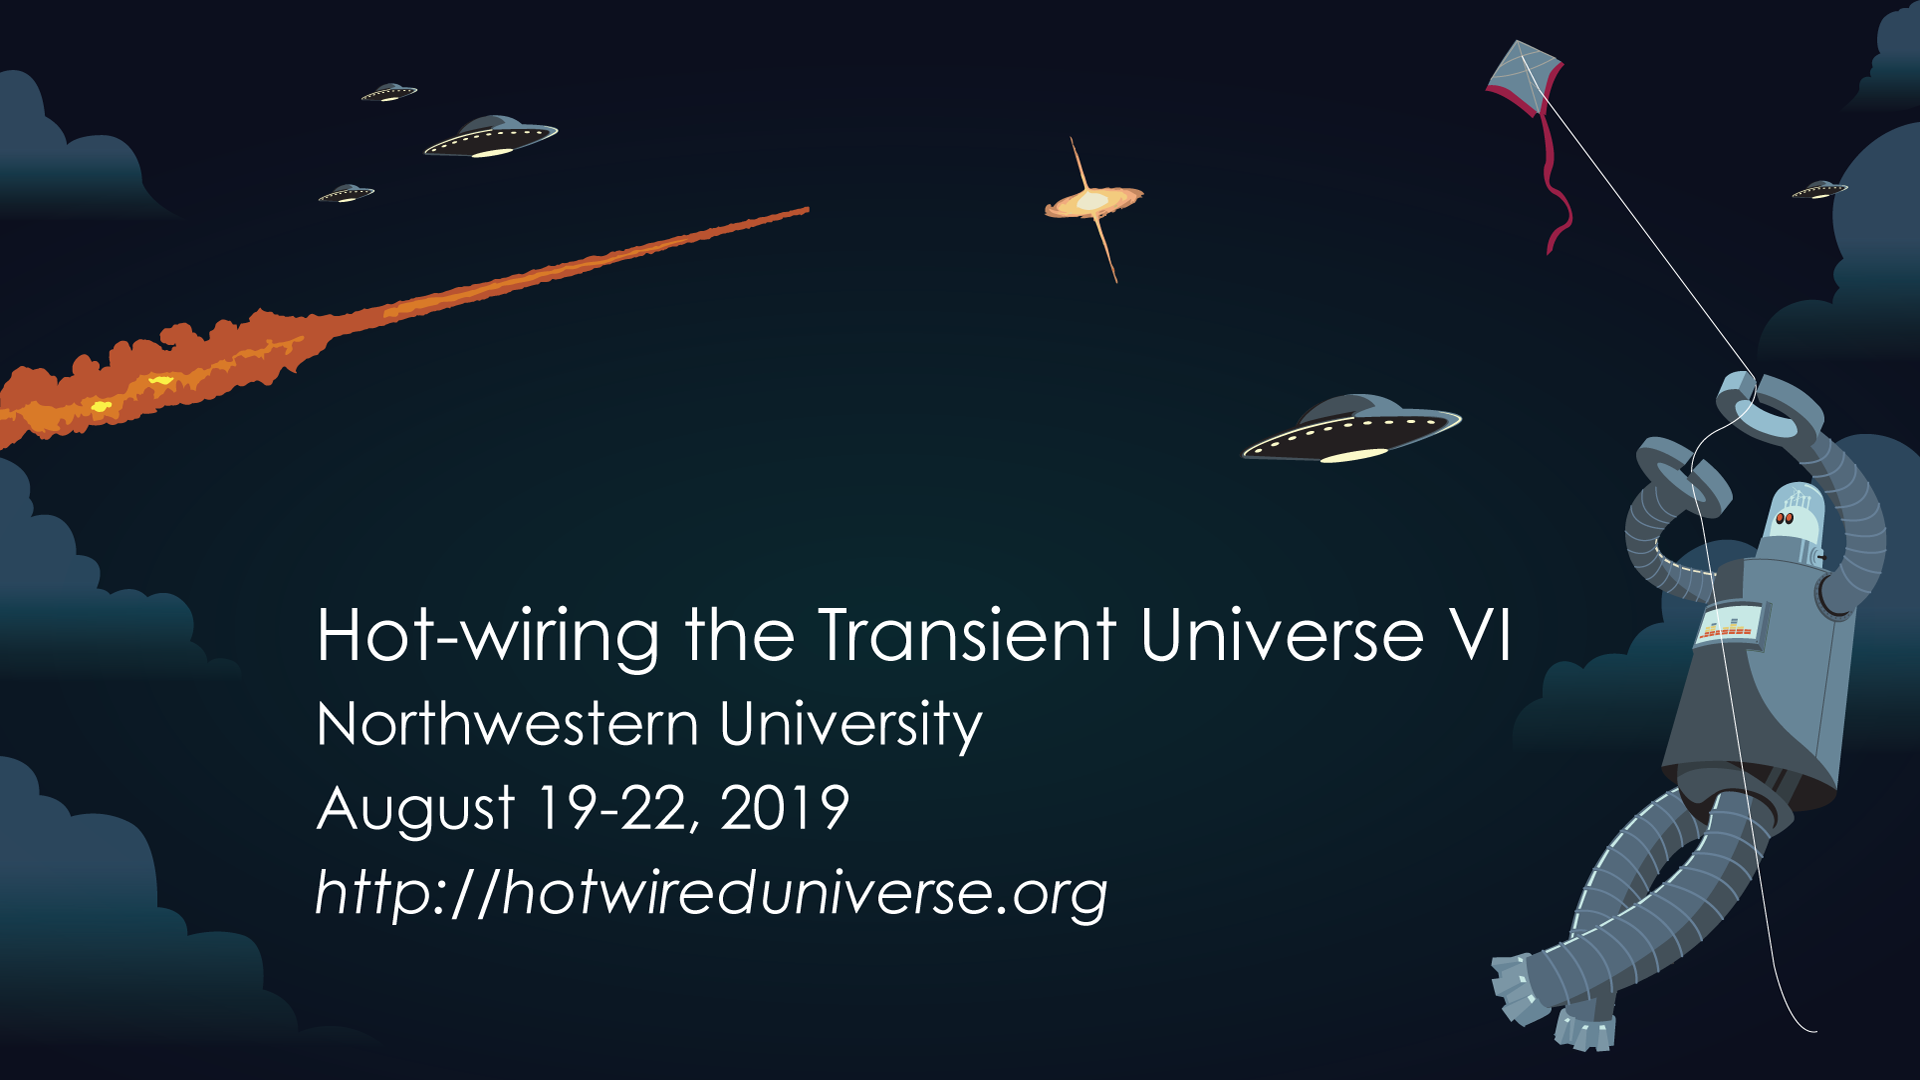 Hot-wiring the Transient Universe V on